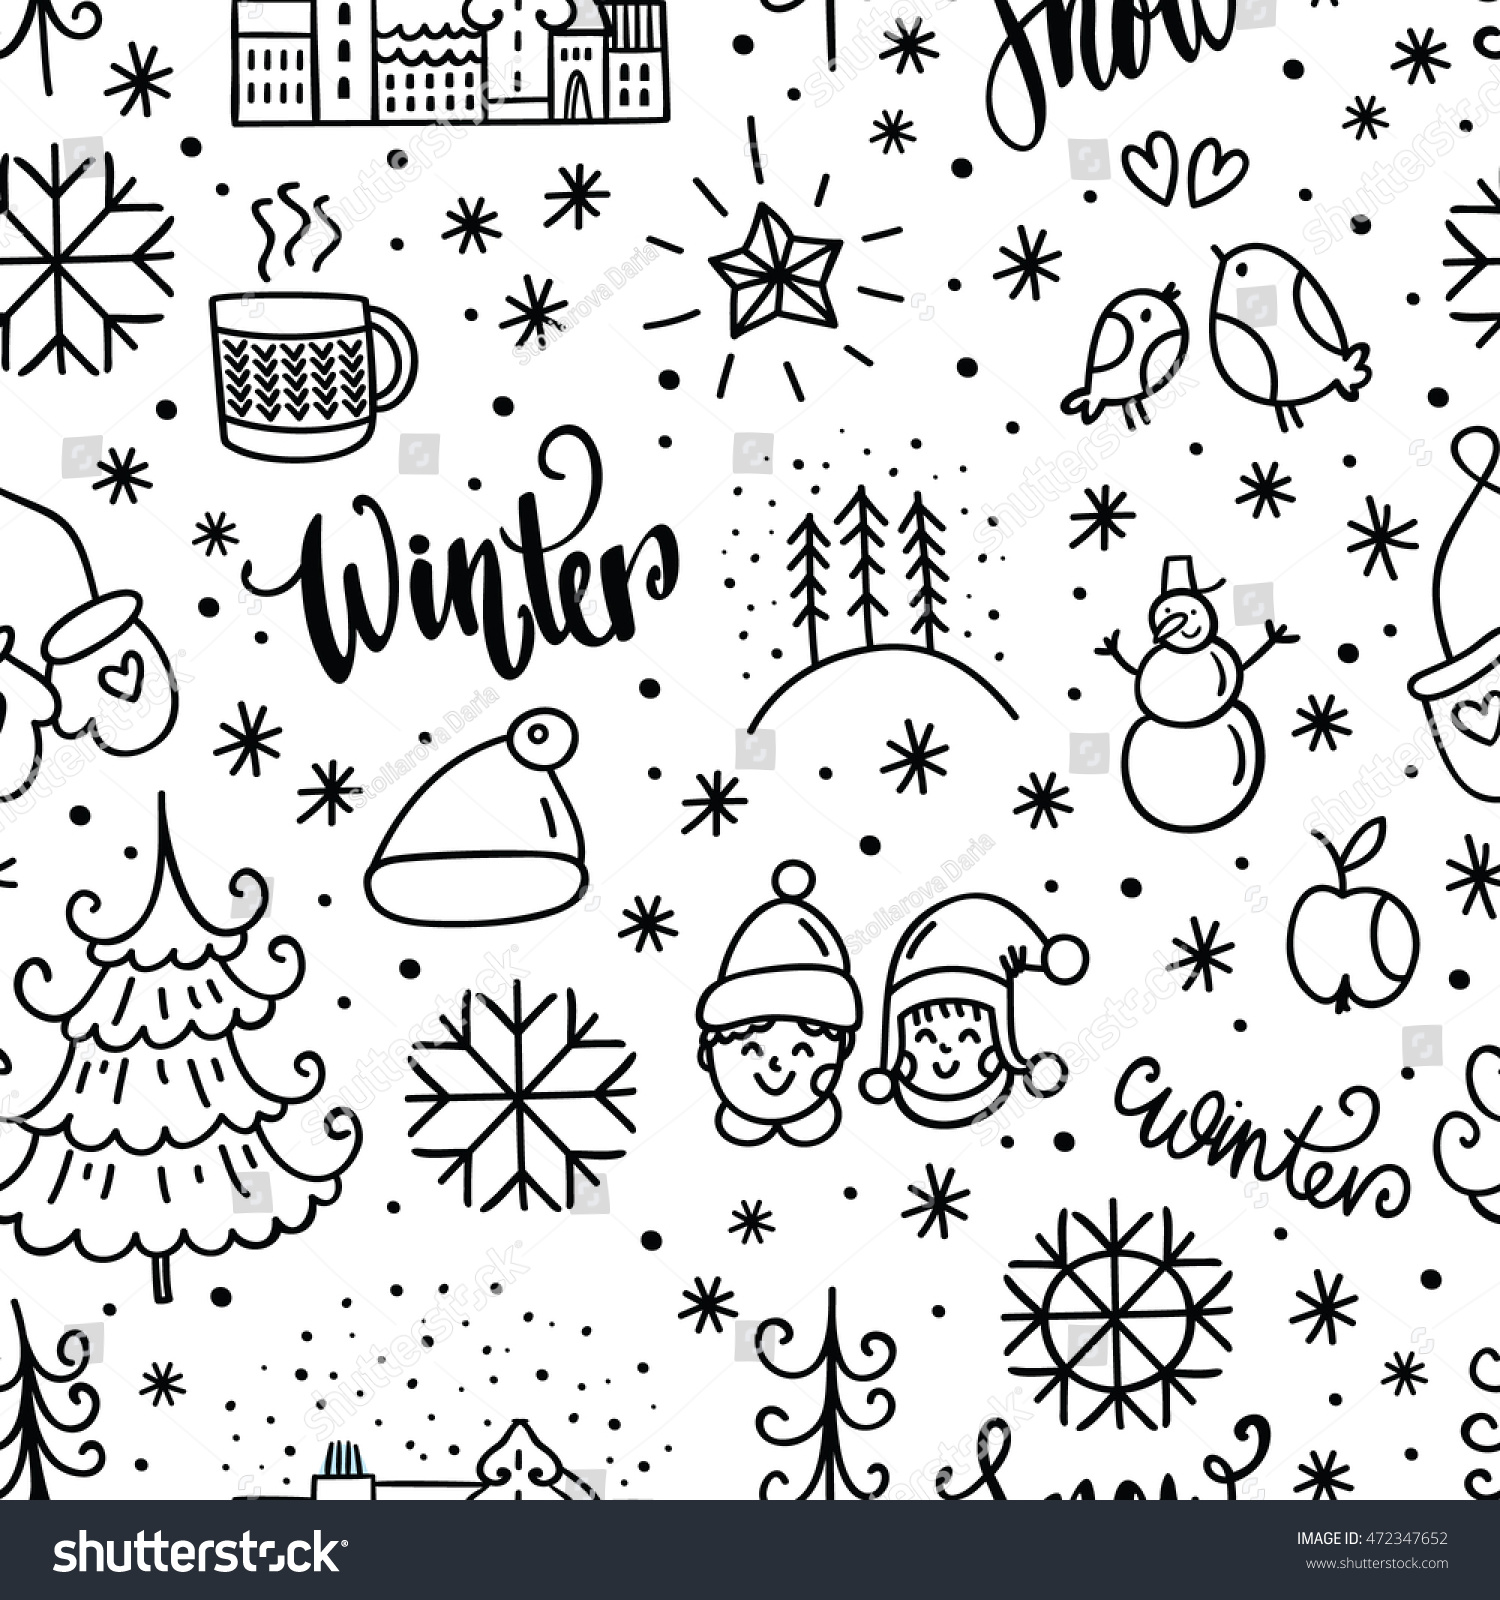 Winter Doodles Icon Hand Drawn Seamless Stock Vector ...